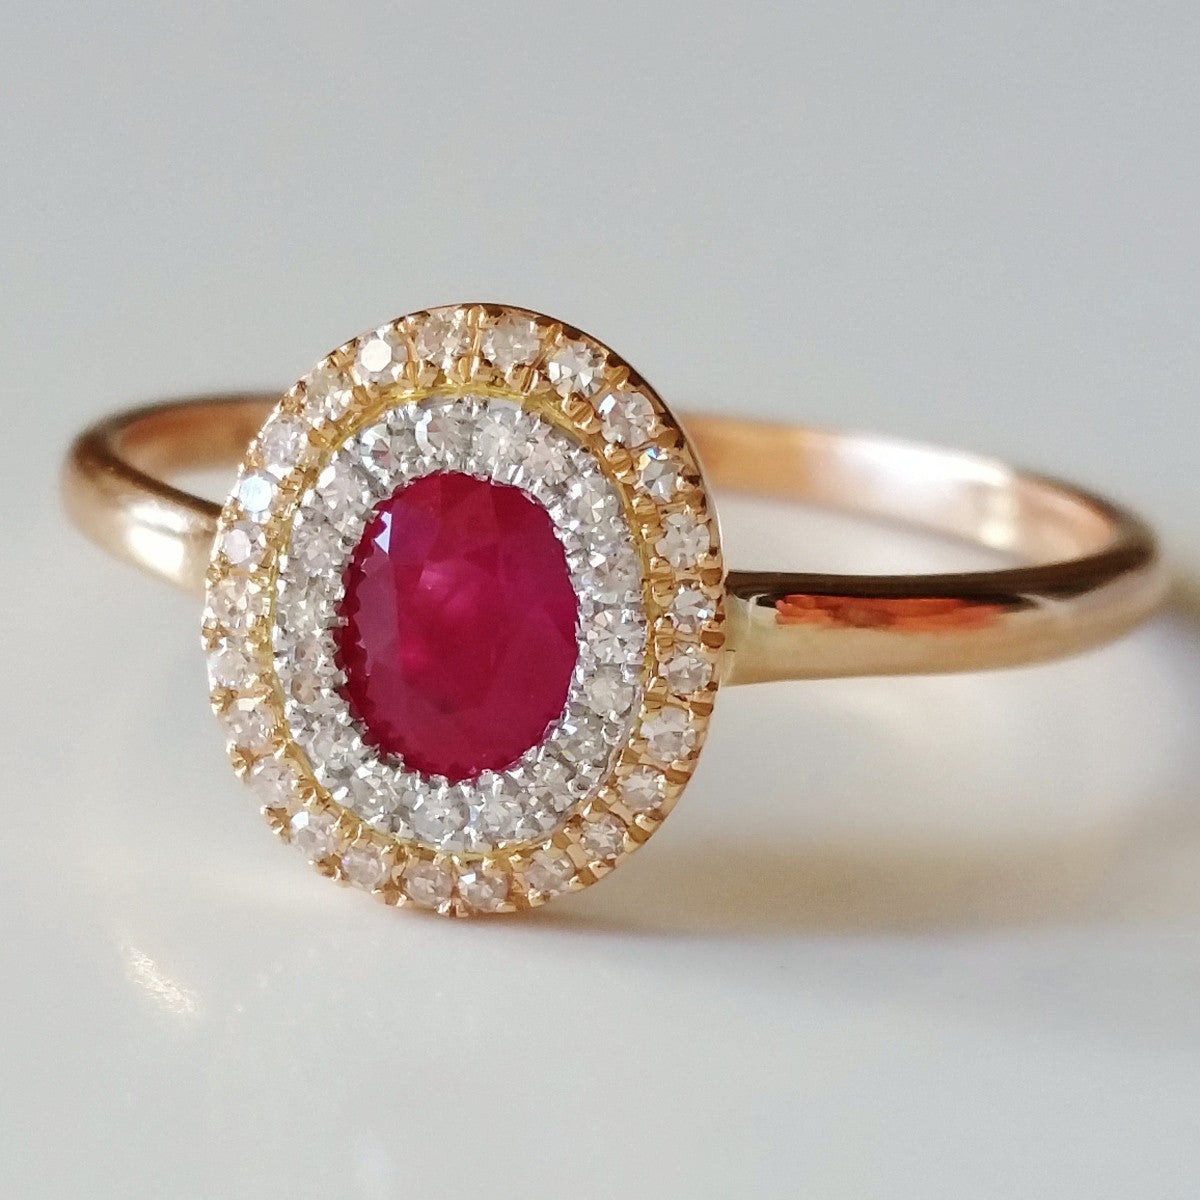 9K SOLID ROSE GOLD 0.55CT NATURAL RUBY HALO RING WITH 43 DIAMONDS.